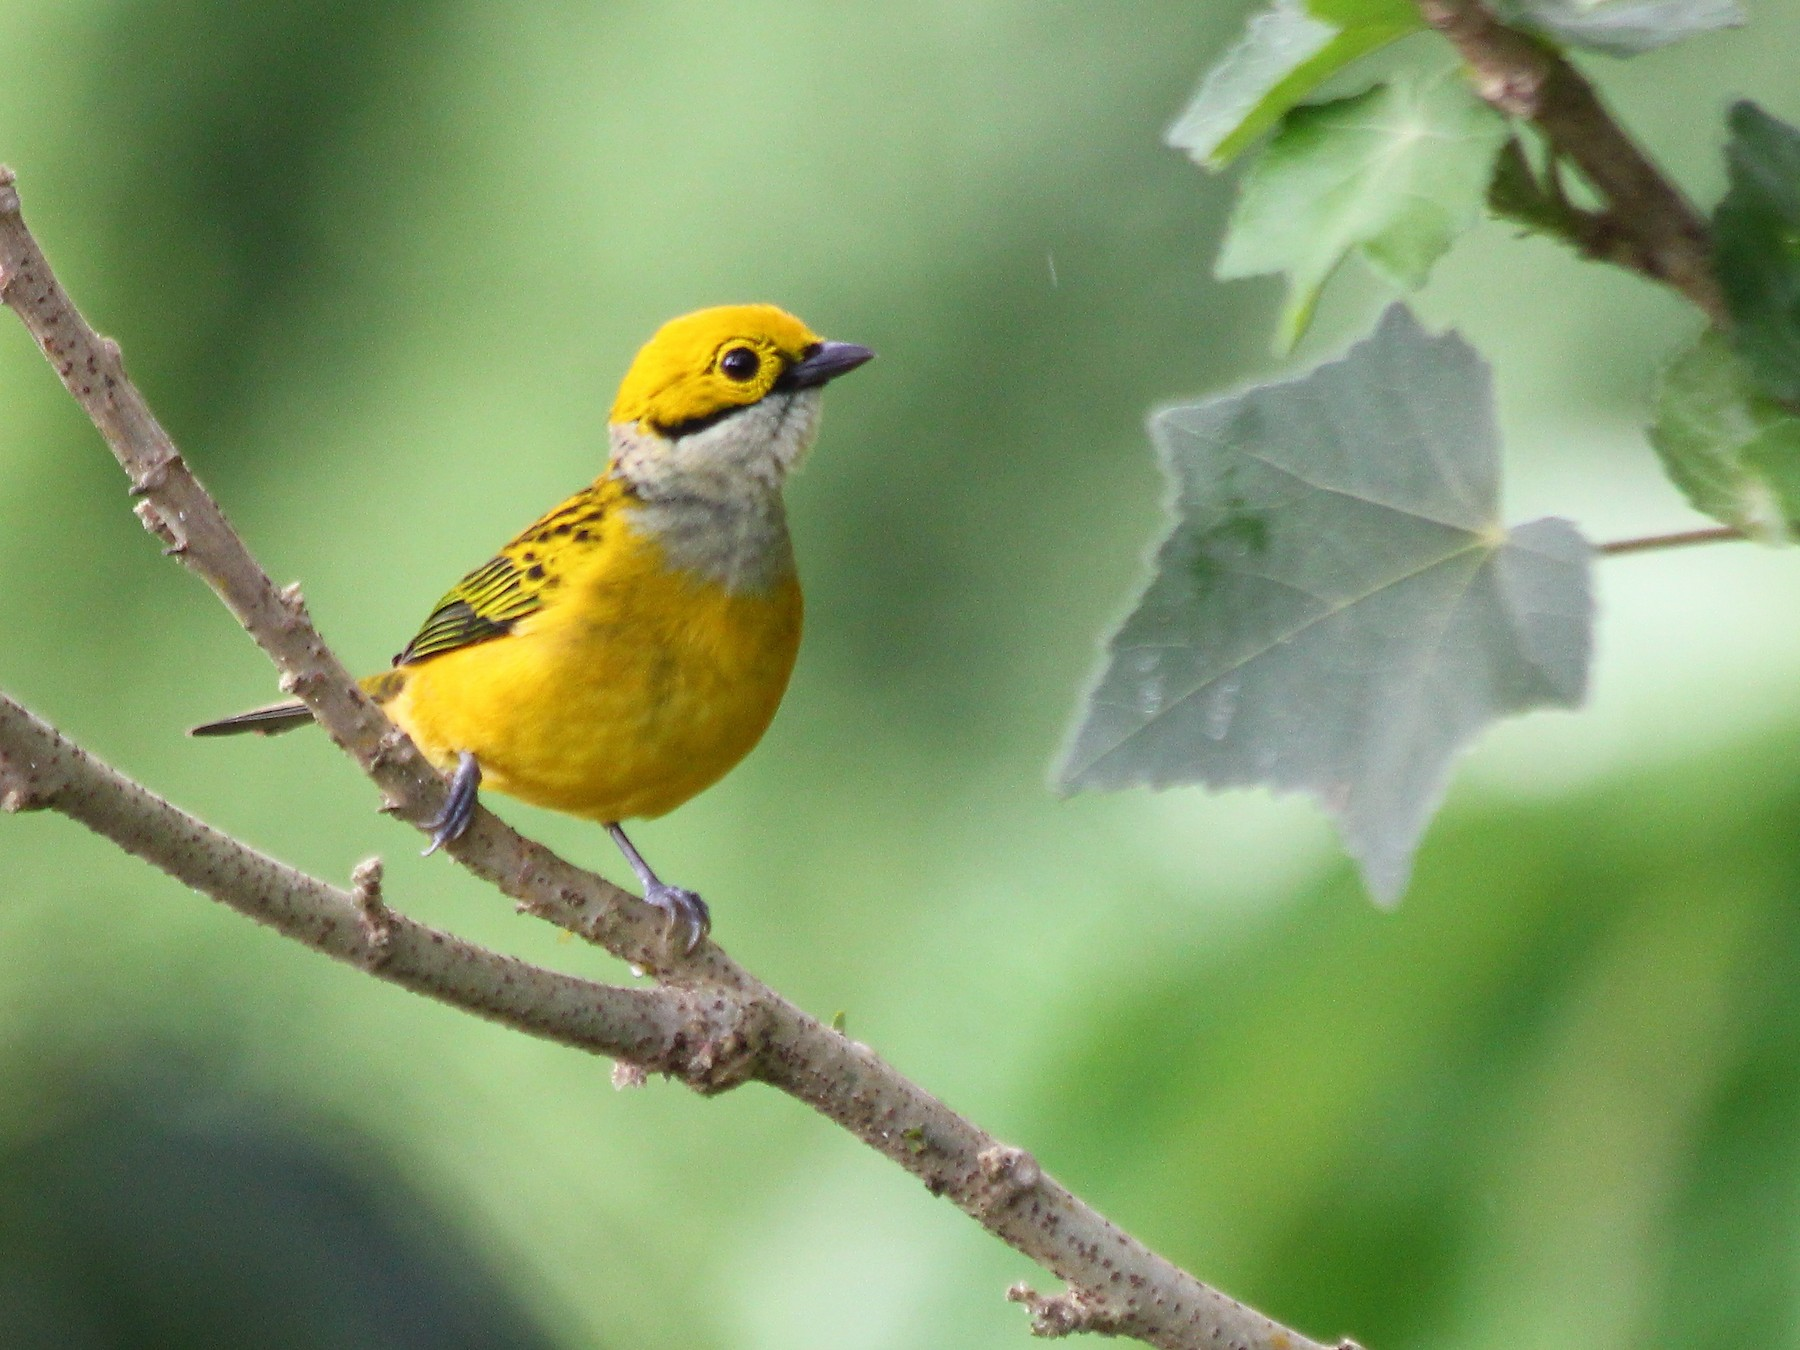 Silver-throated Tanager - Devin Griffiths